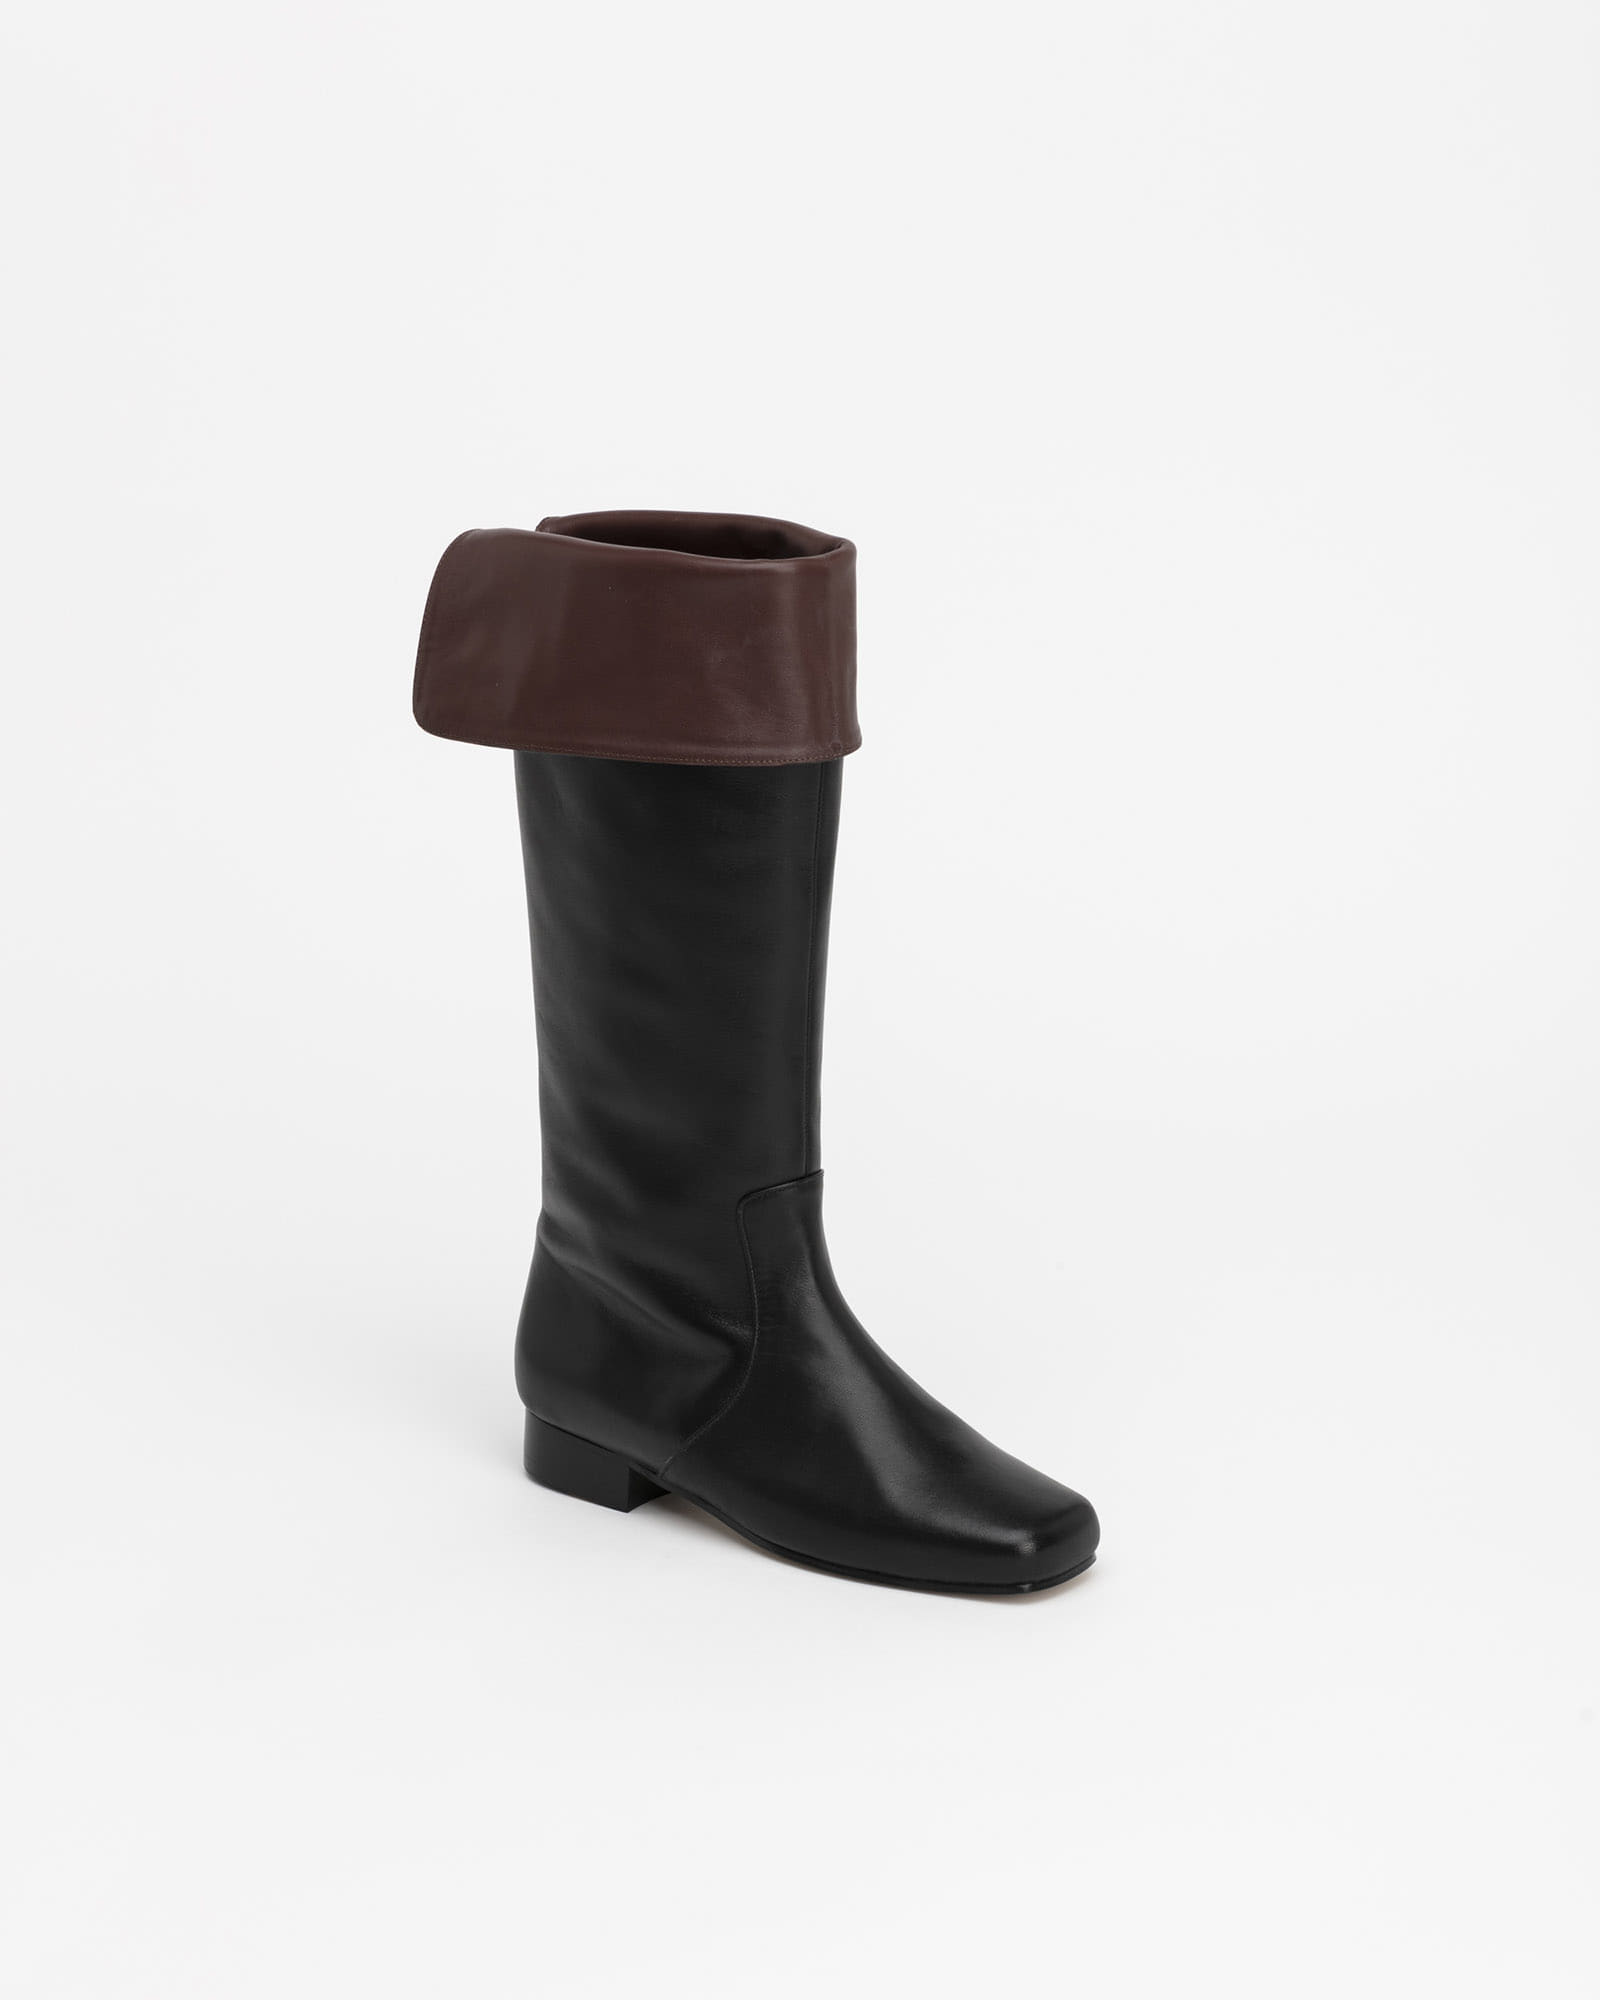 Darty Foldable Boots in Black with Brown Wing